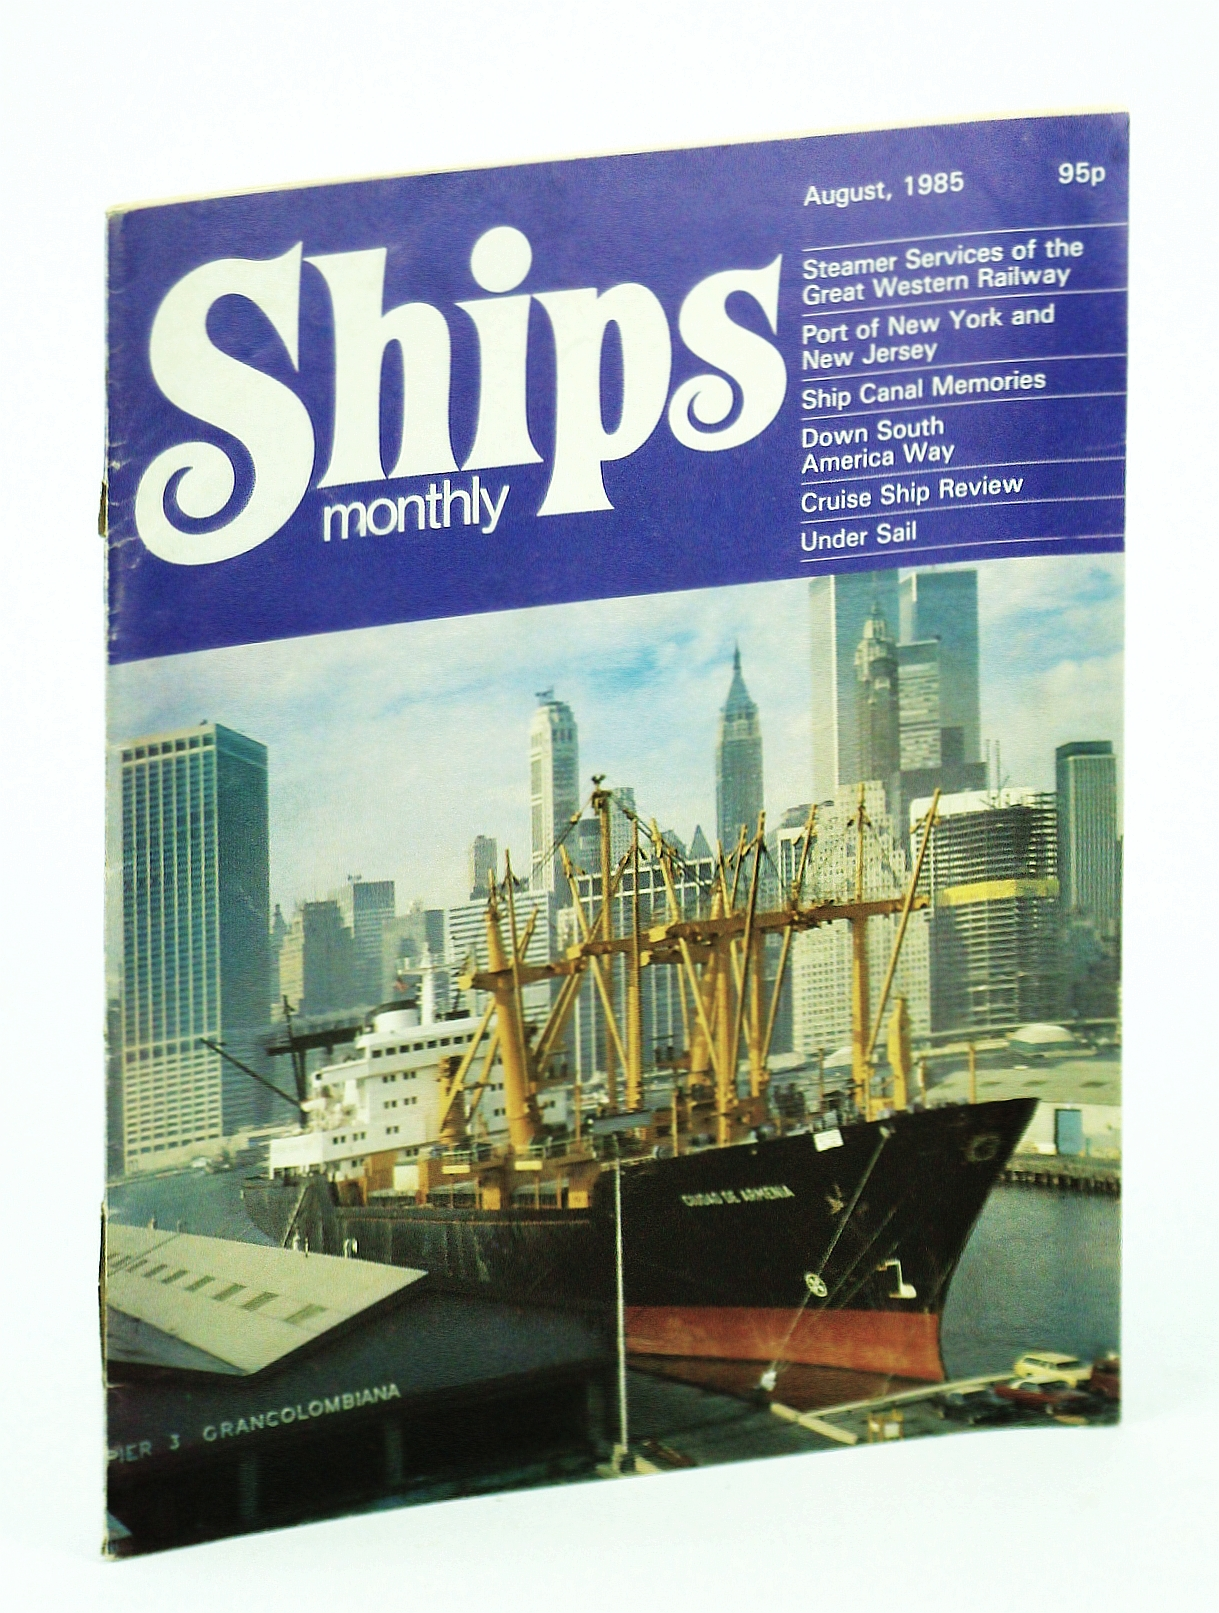 Image for Ships Monthly - The Magazine for Shiplovers Ashore and Afloat, August 1985 - Shipping Services of the Great Western Railway